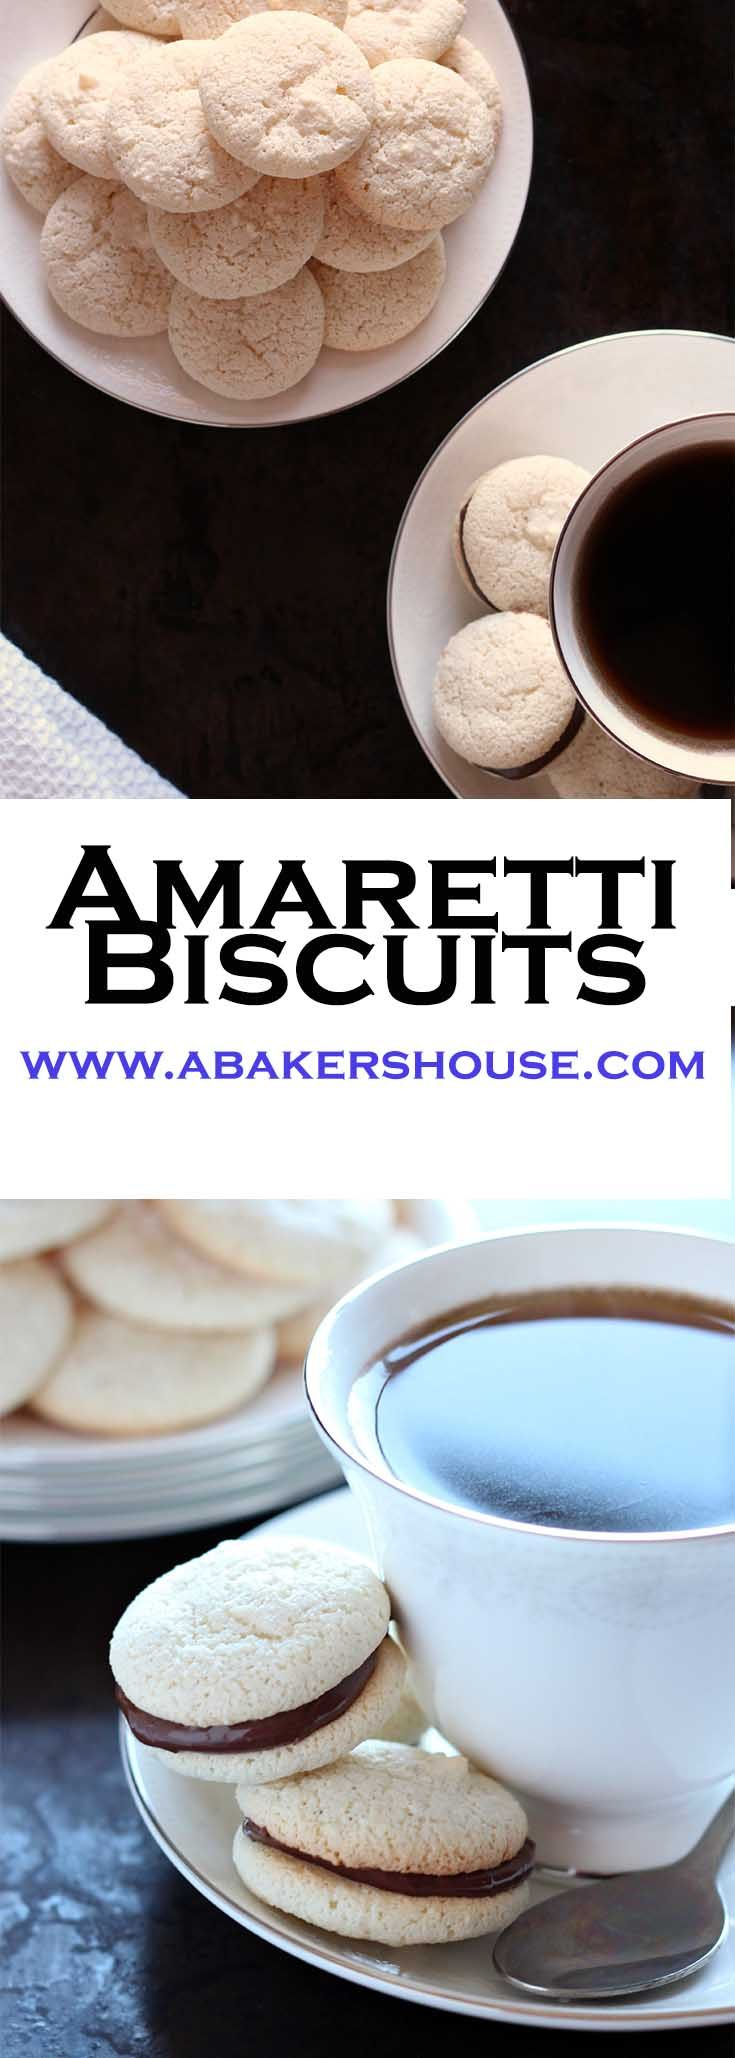 Amaretti biscuits are a gluten free Italian cookie (or biscuit) that are perfect on their own or even better sandwiched with a chocolate filling. These little meringues could be cousins with the better known macaron.#amaretti #glutenfree #gfcookie #abakershouse #nutella